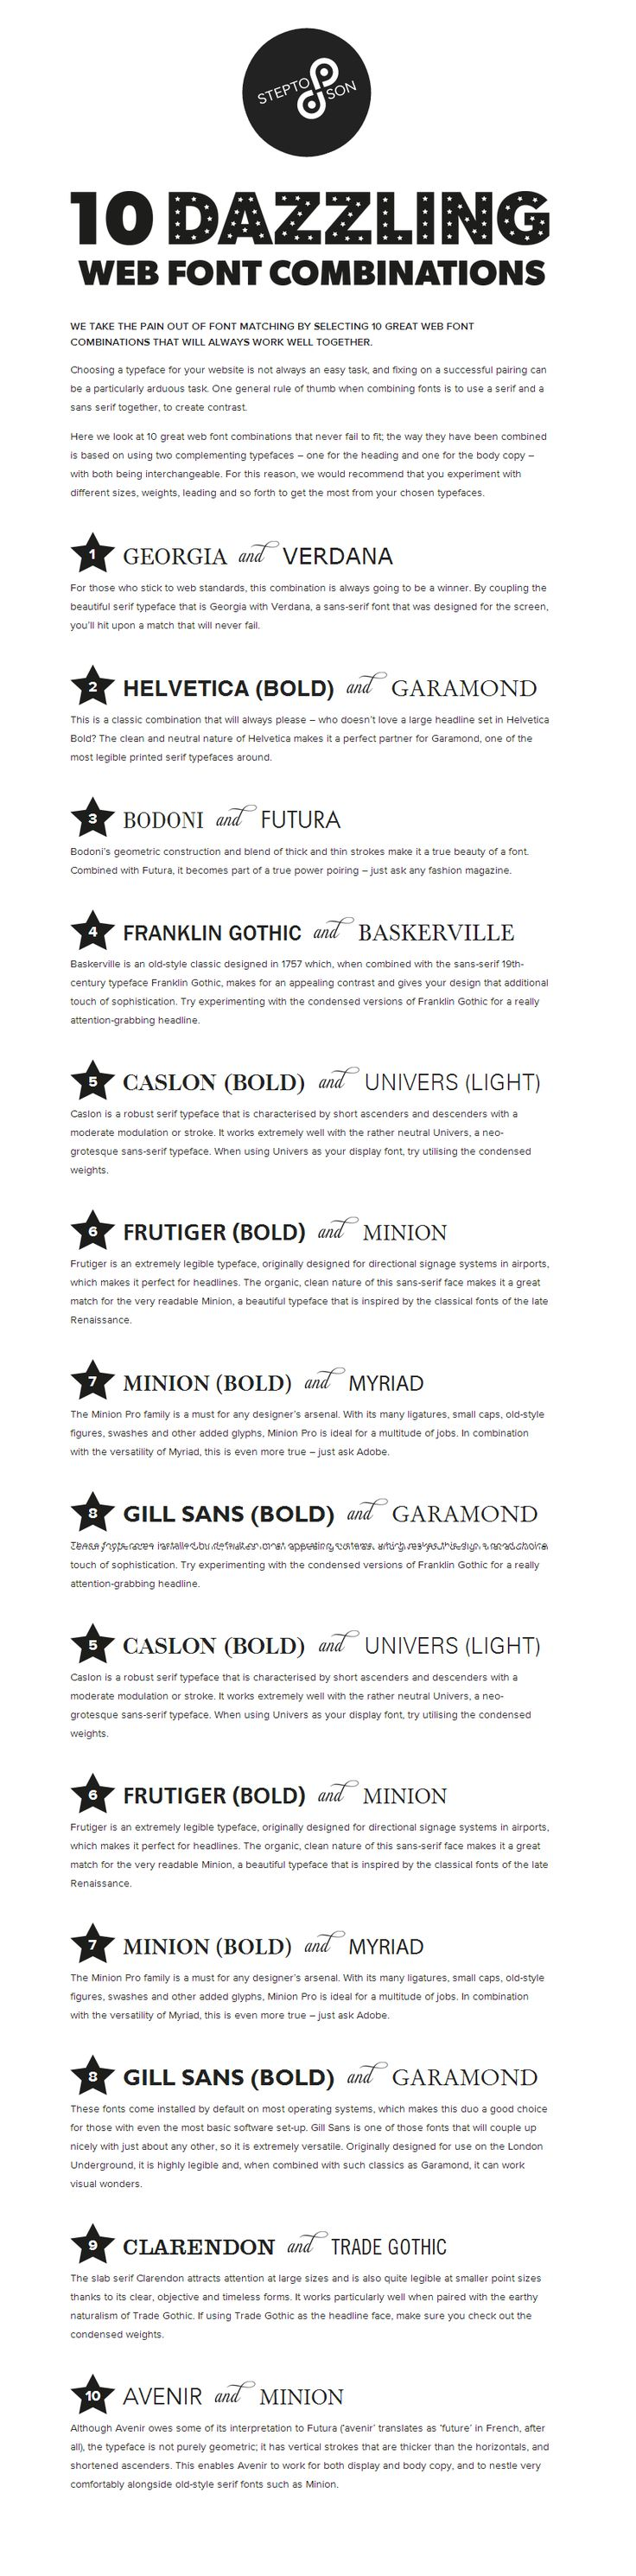 resume Resume Fonts best 20 resume fonts ideas on pinterest create a cv 10 great web font combinations